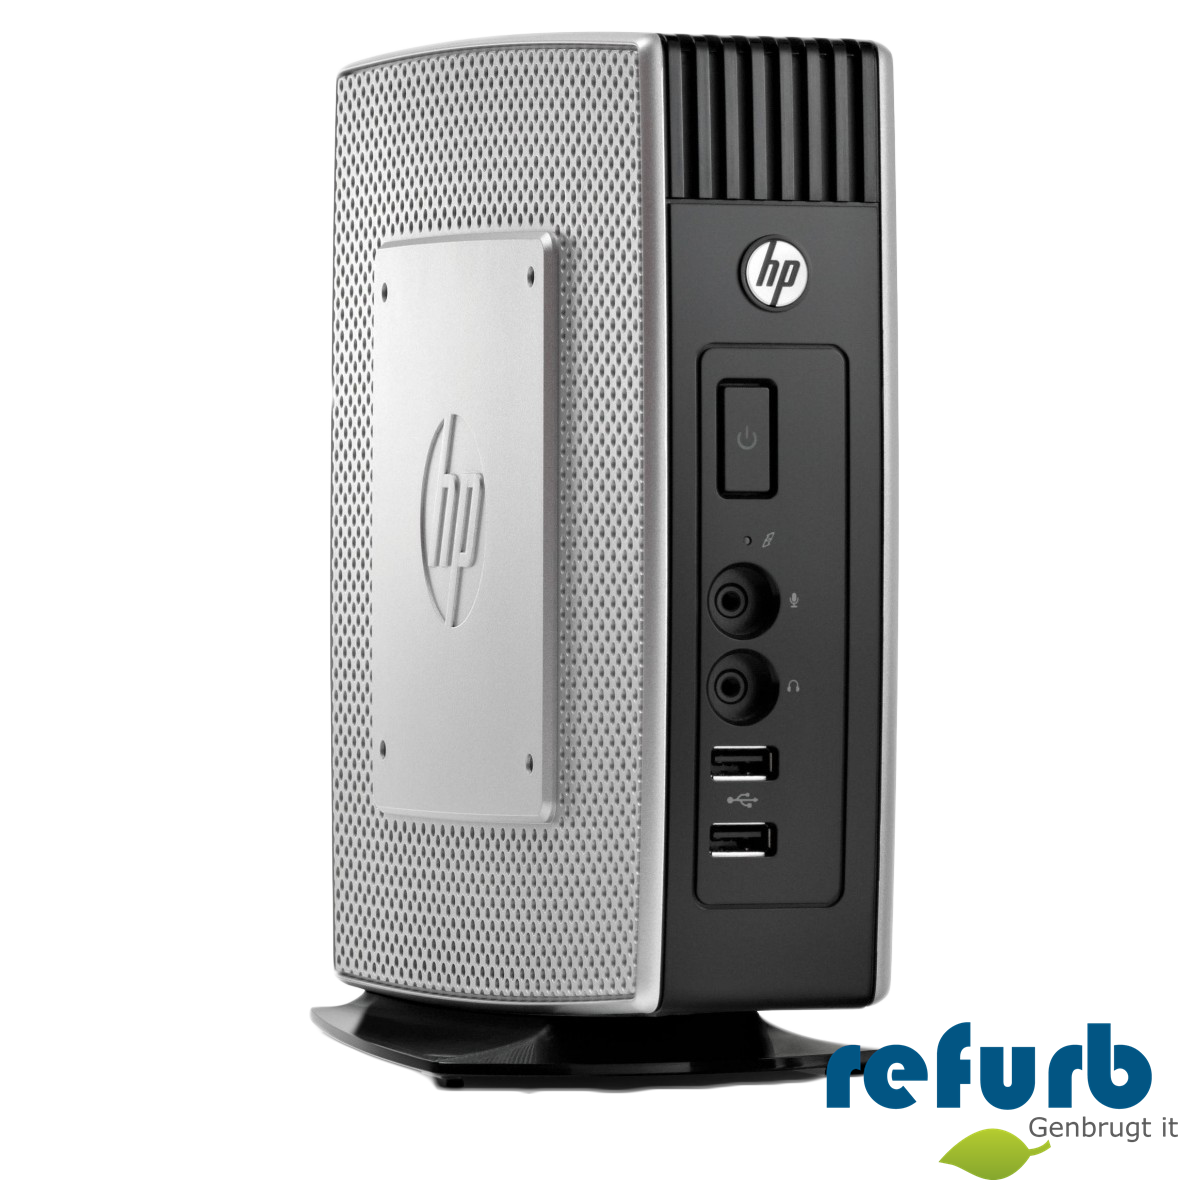 Hp thinclient t5550 fra Hp på refurb